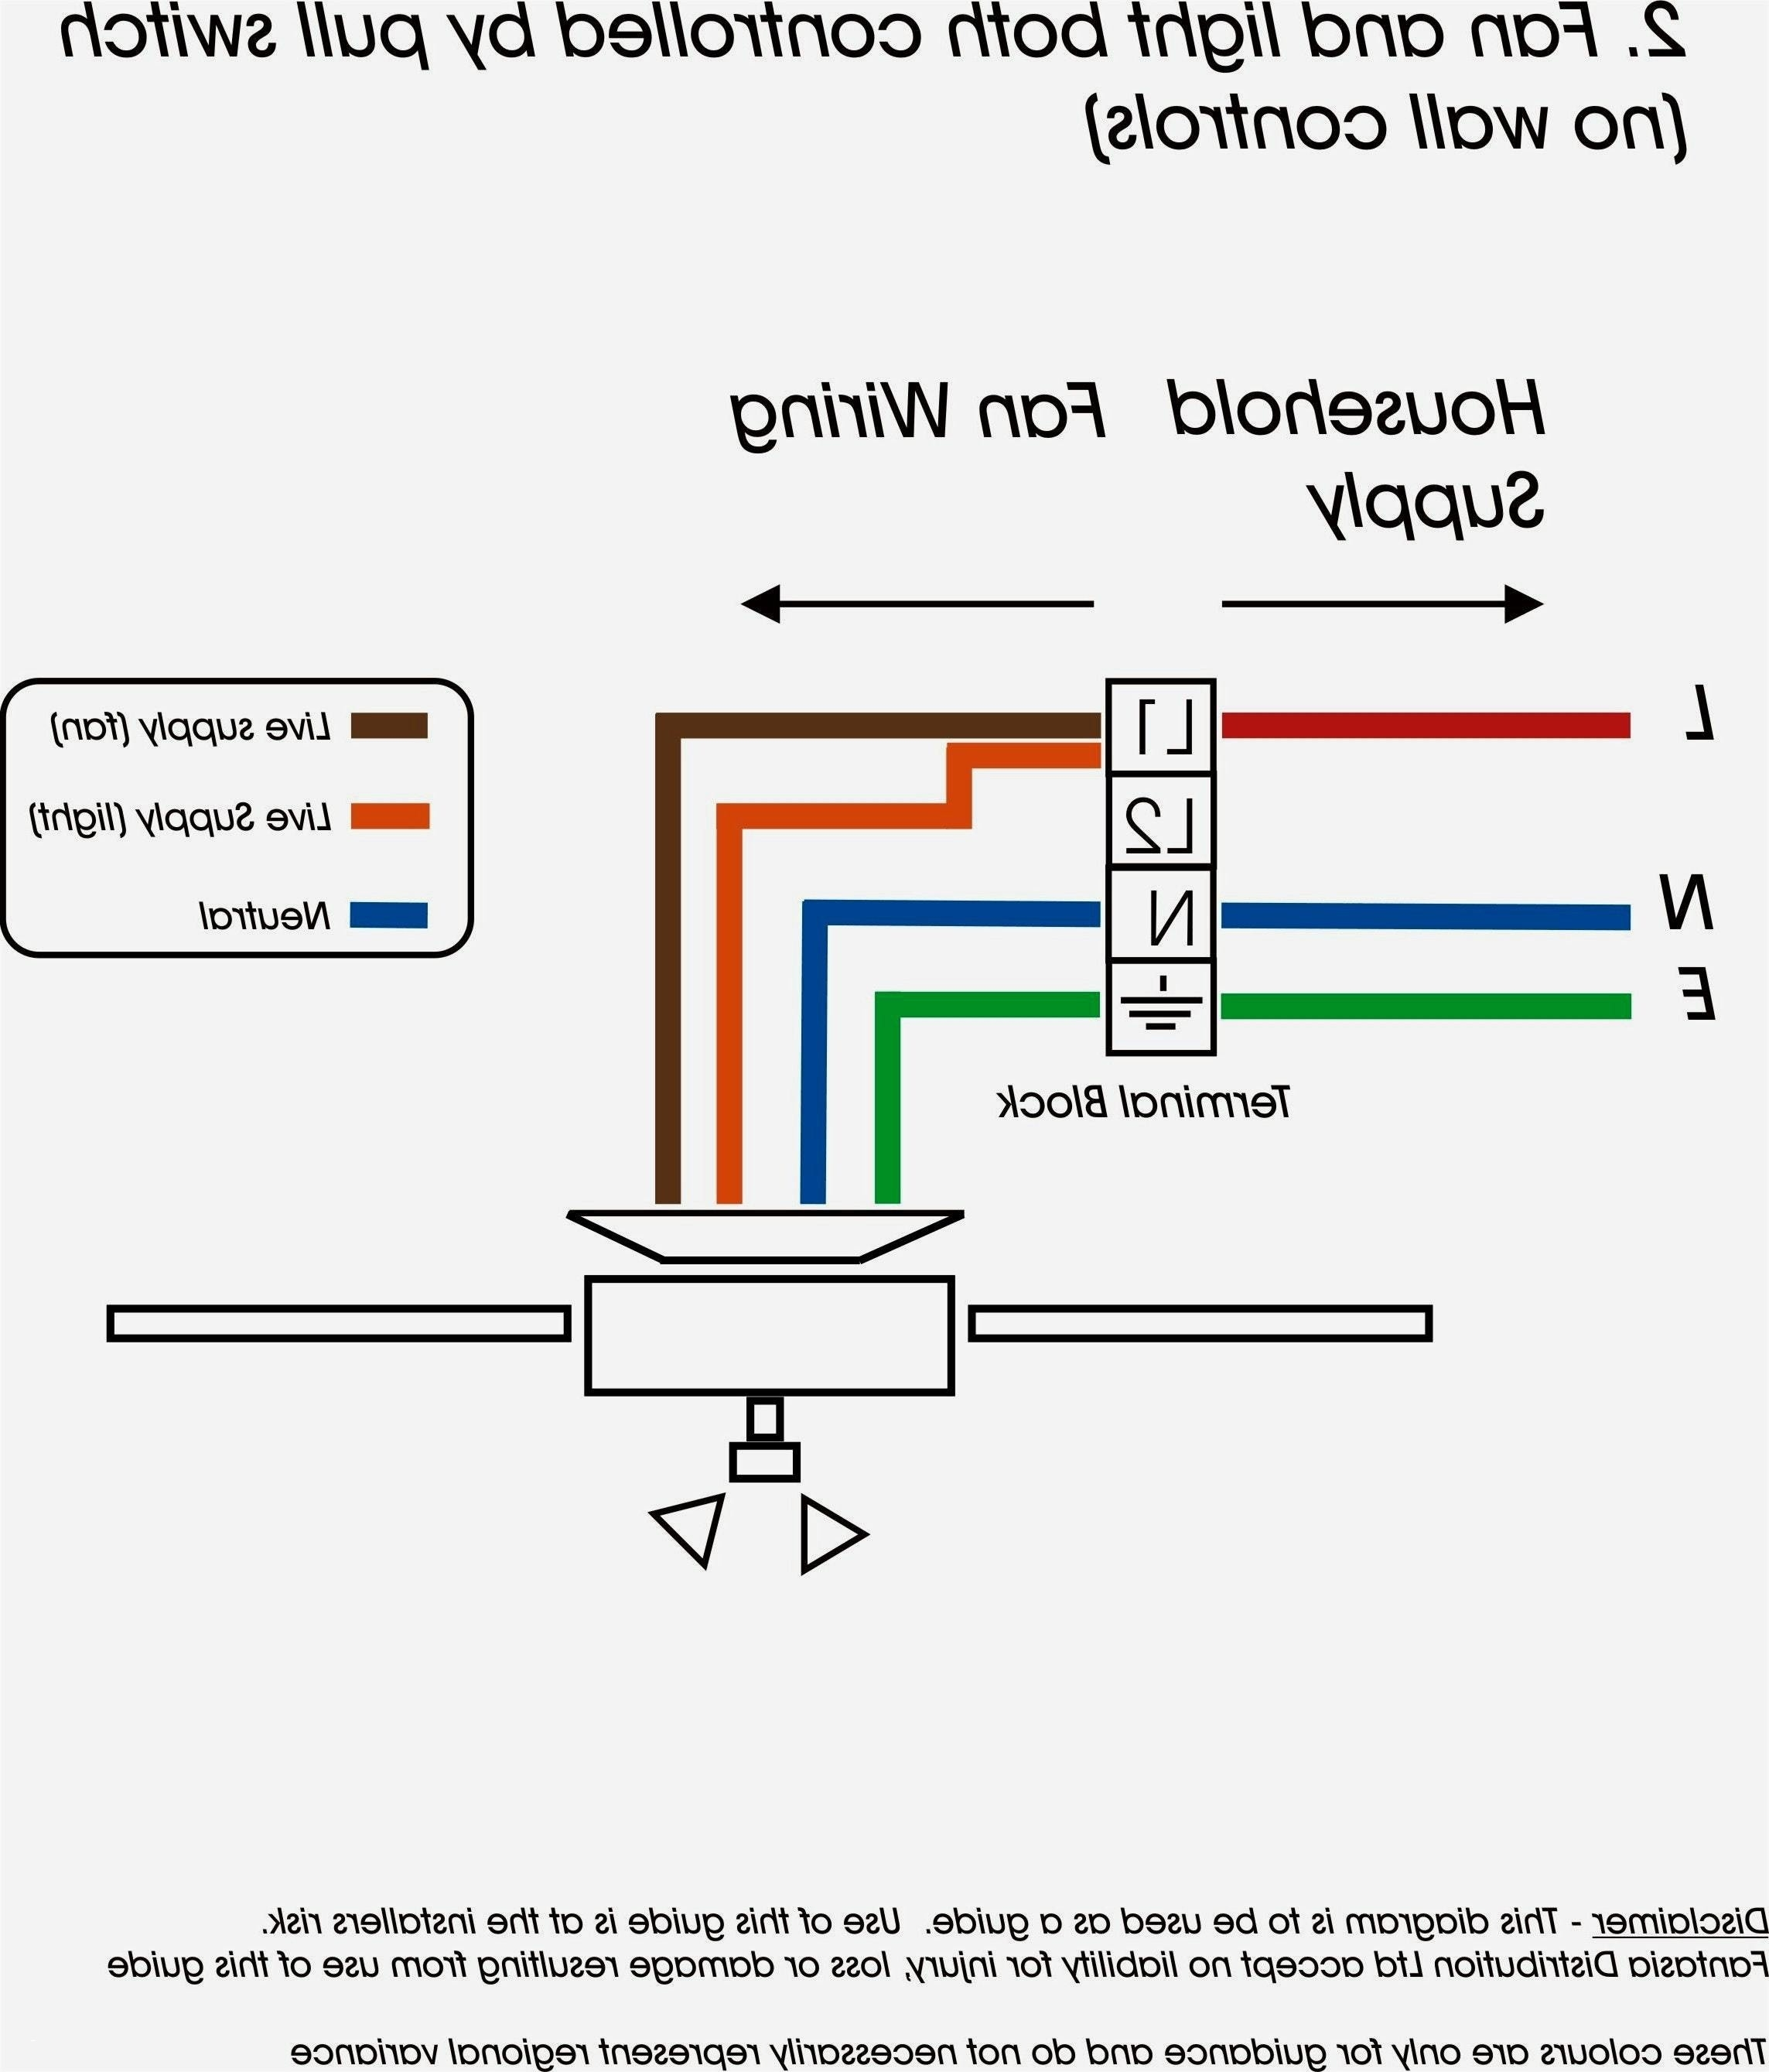 fan control center wiring diagram Download-hunter fan wiring diagram Download Ceiling Fan Wire Diagram Inspirational Wiring Diagram Examples Archives L2archive DOWNLOAD Wiring Diagram 6-e